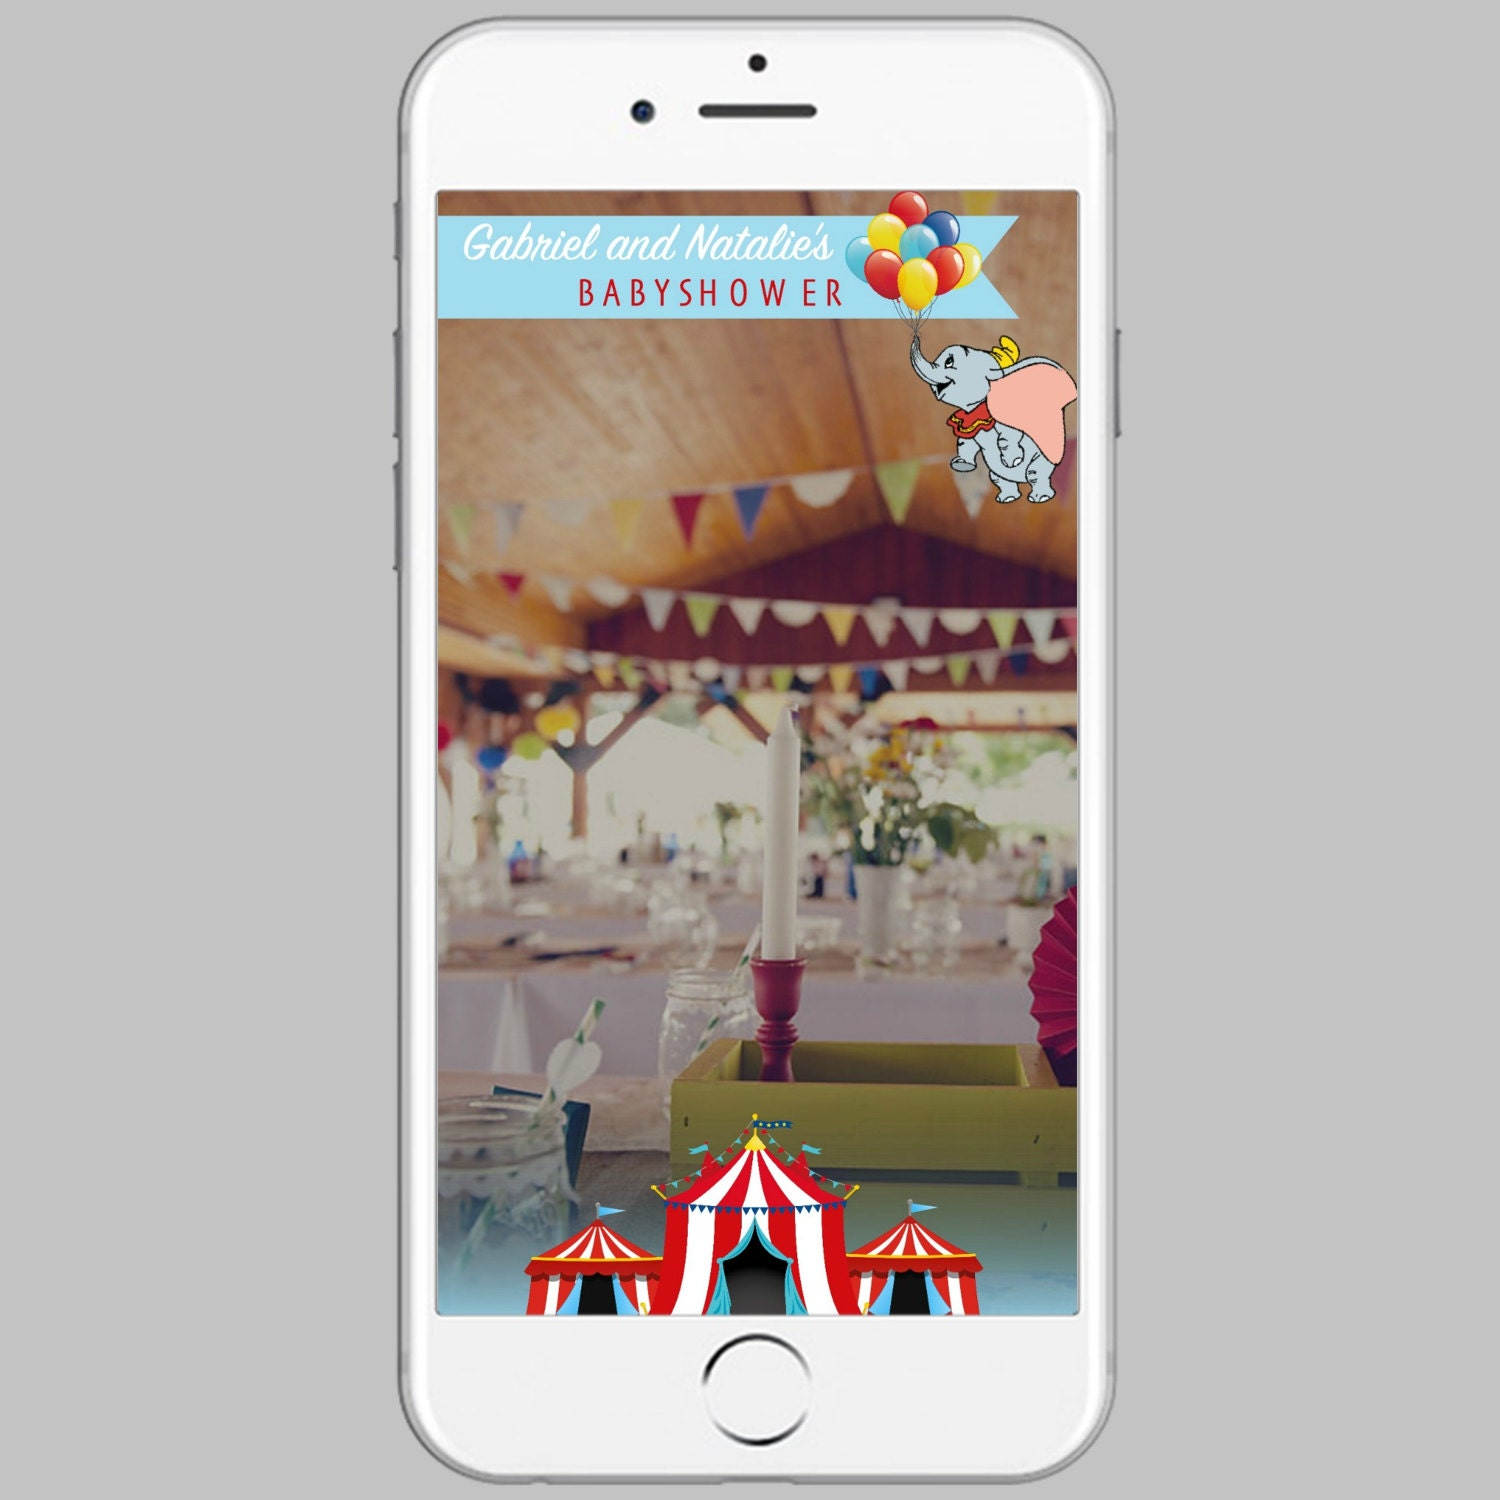 Circus Geofilter Dumbo Geofilter Baby Shower Fully